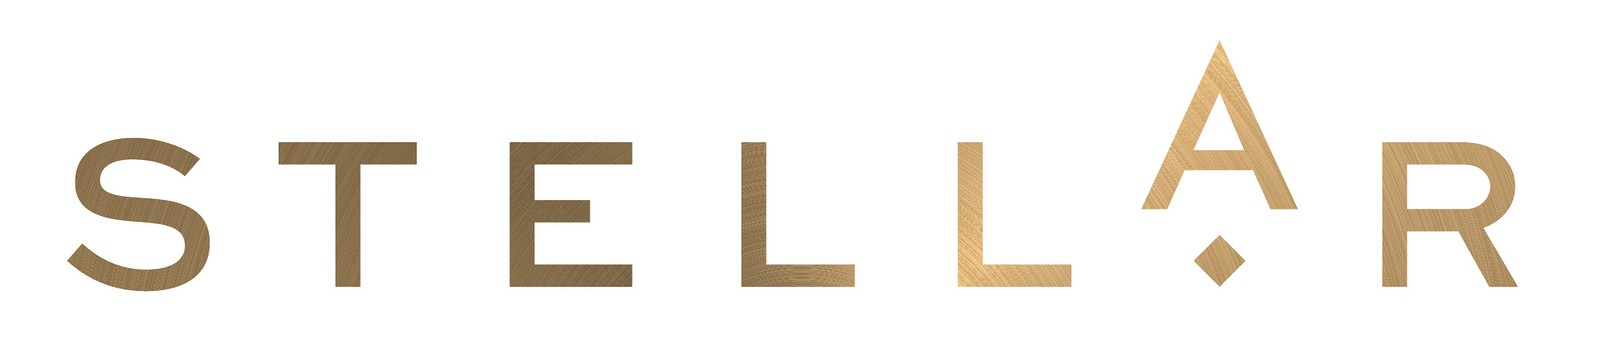 Stellar 2019 brand logo (photo credit: Stellar)